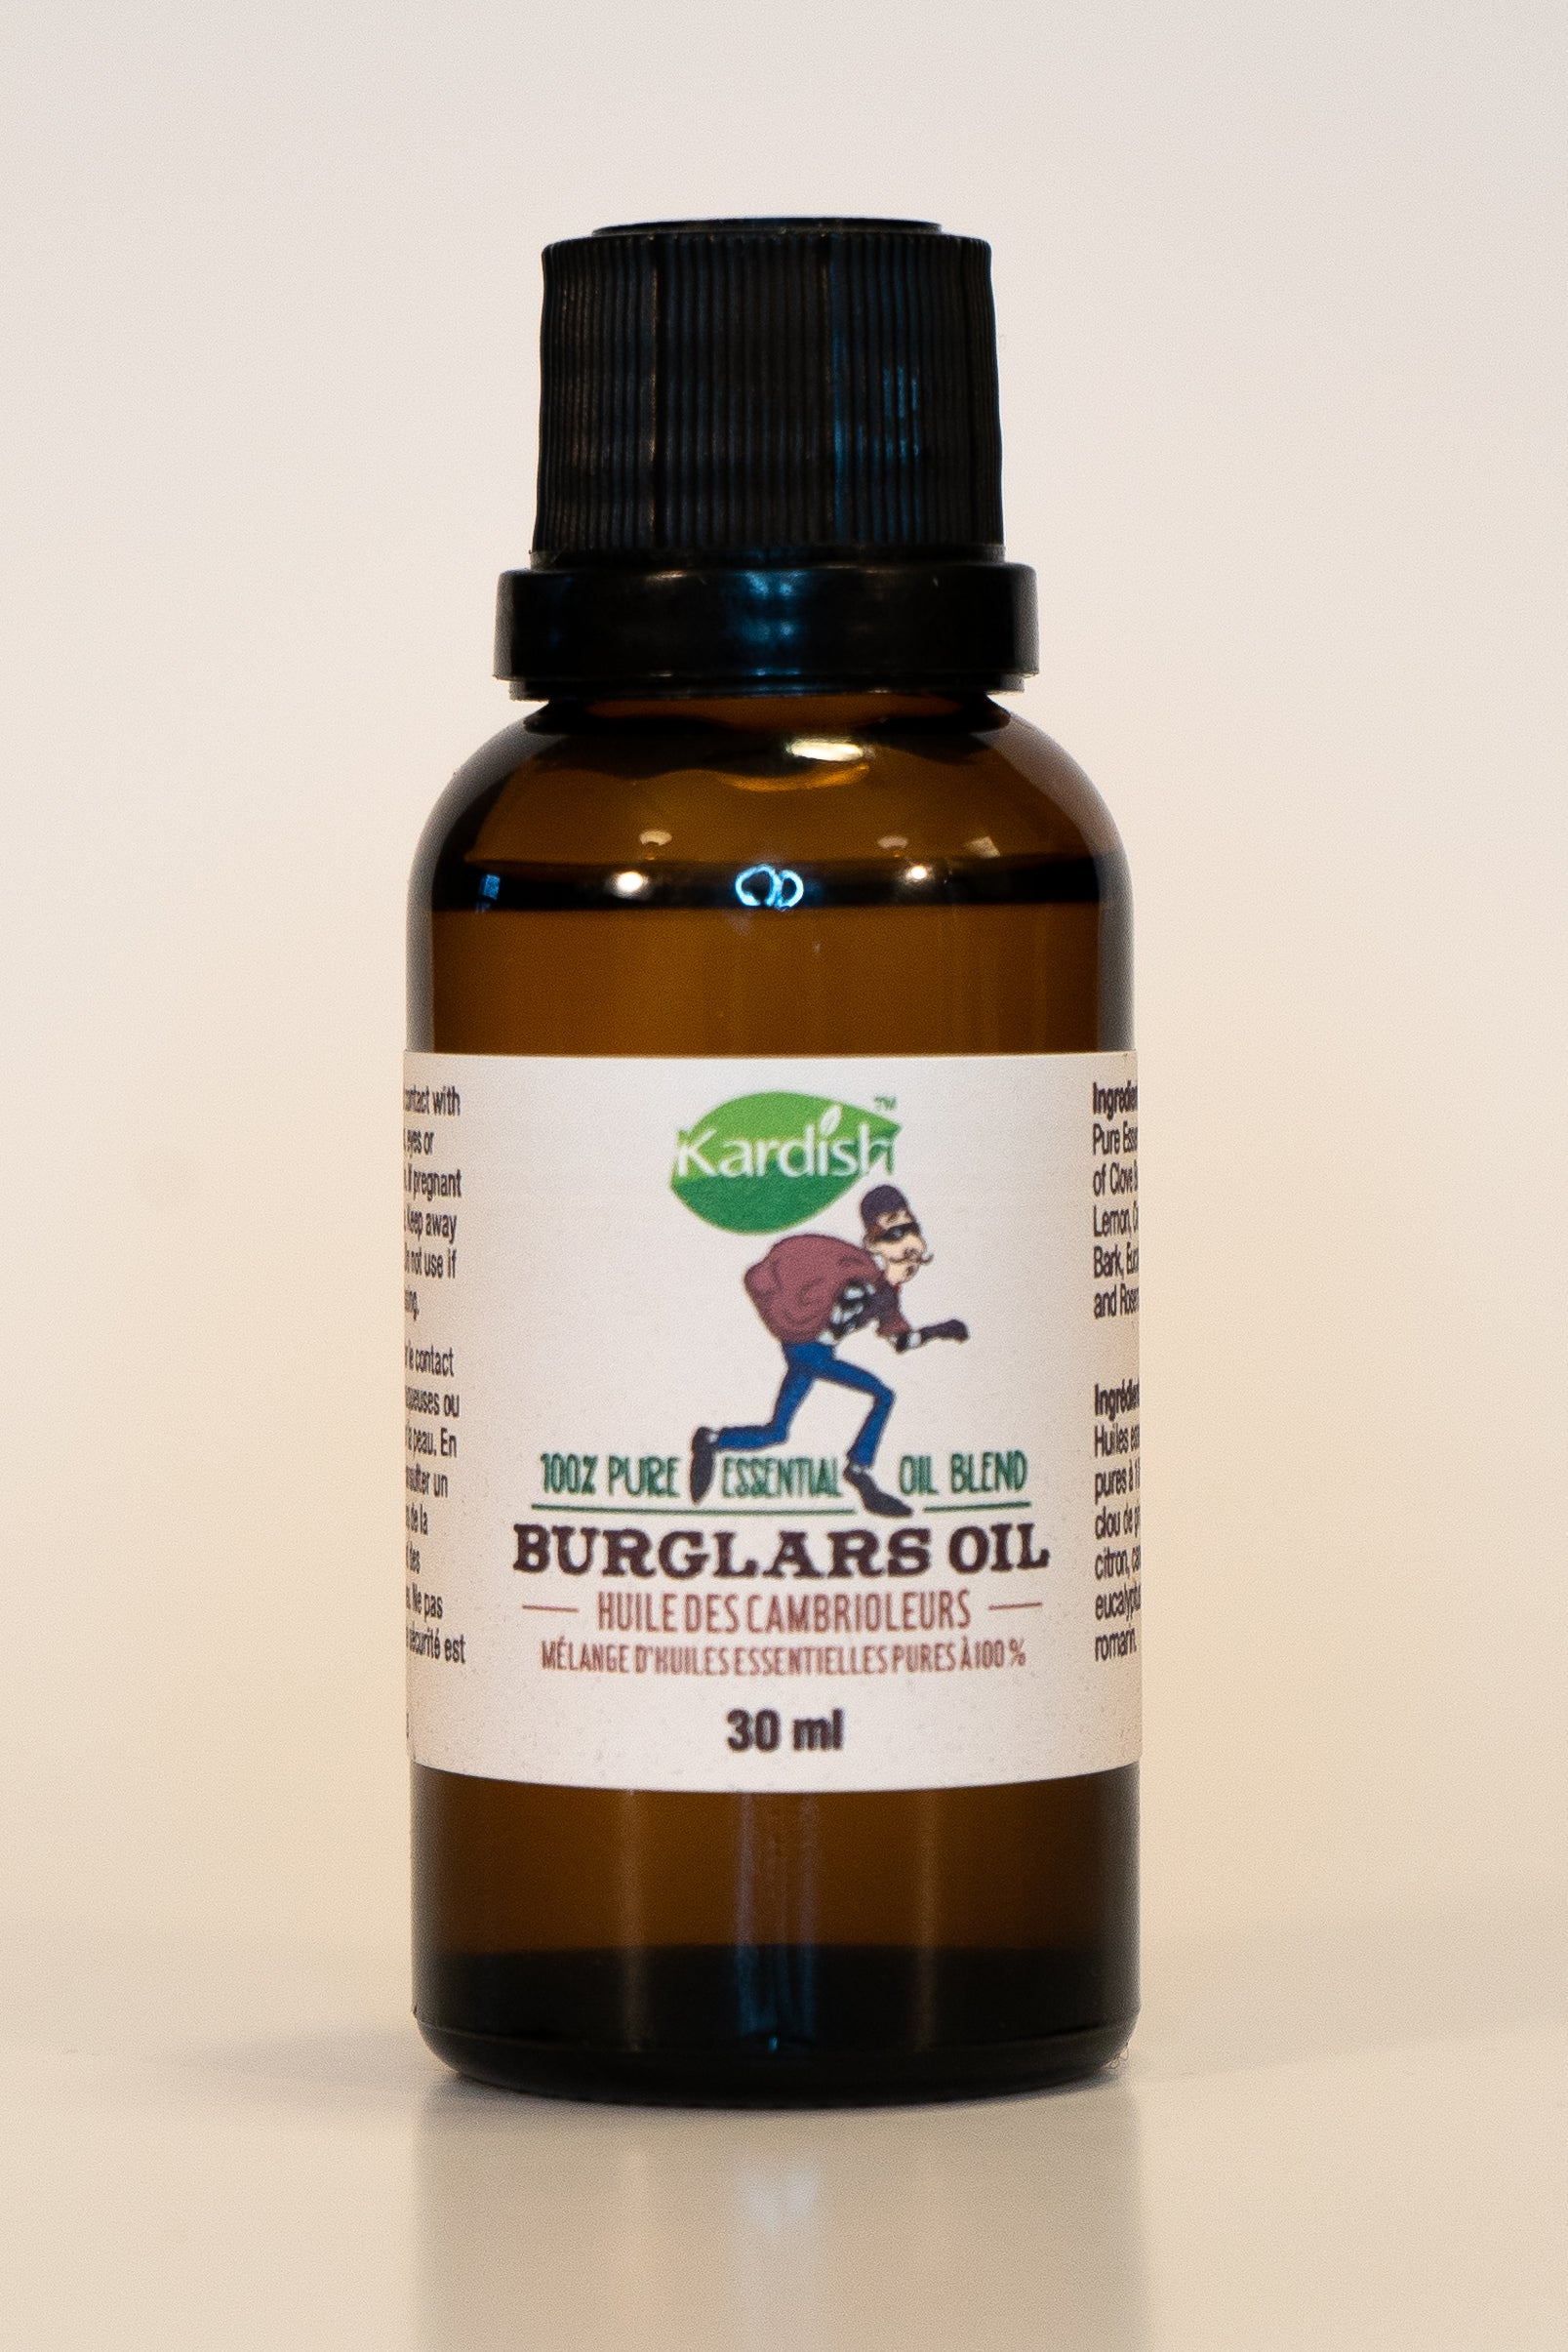 Kardish Burglars Oil